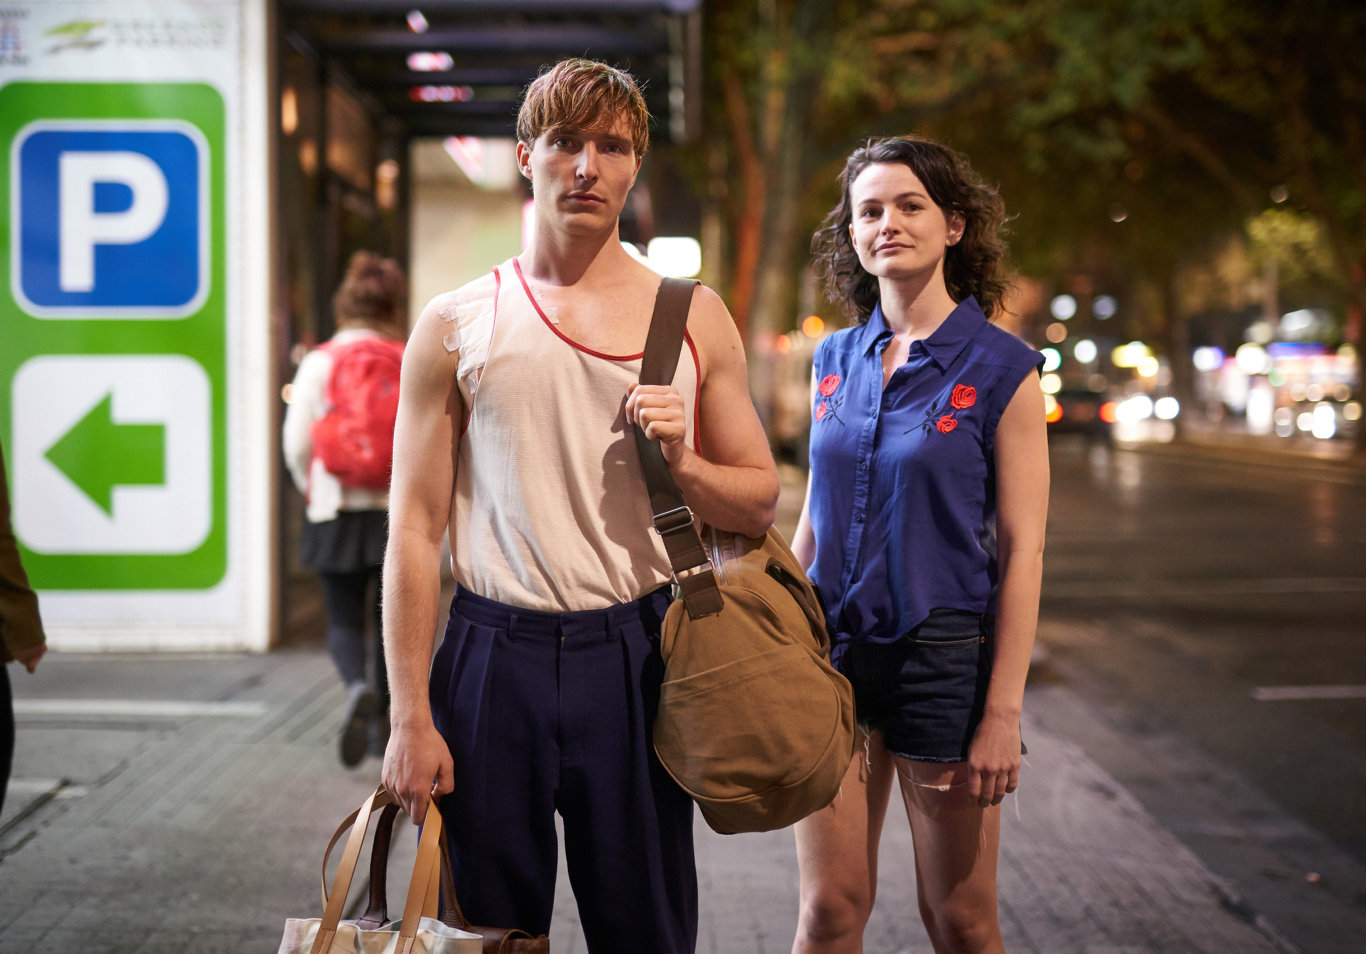 Sean Keenan and Hannah Monson in a scene from the final season of Glitch.